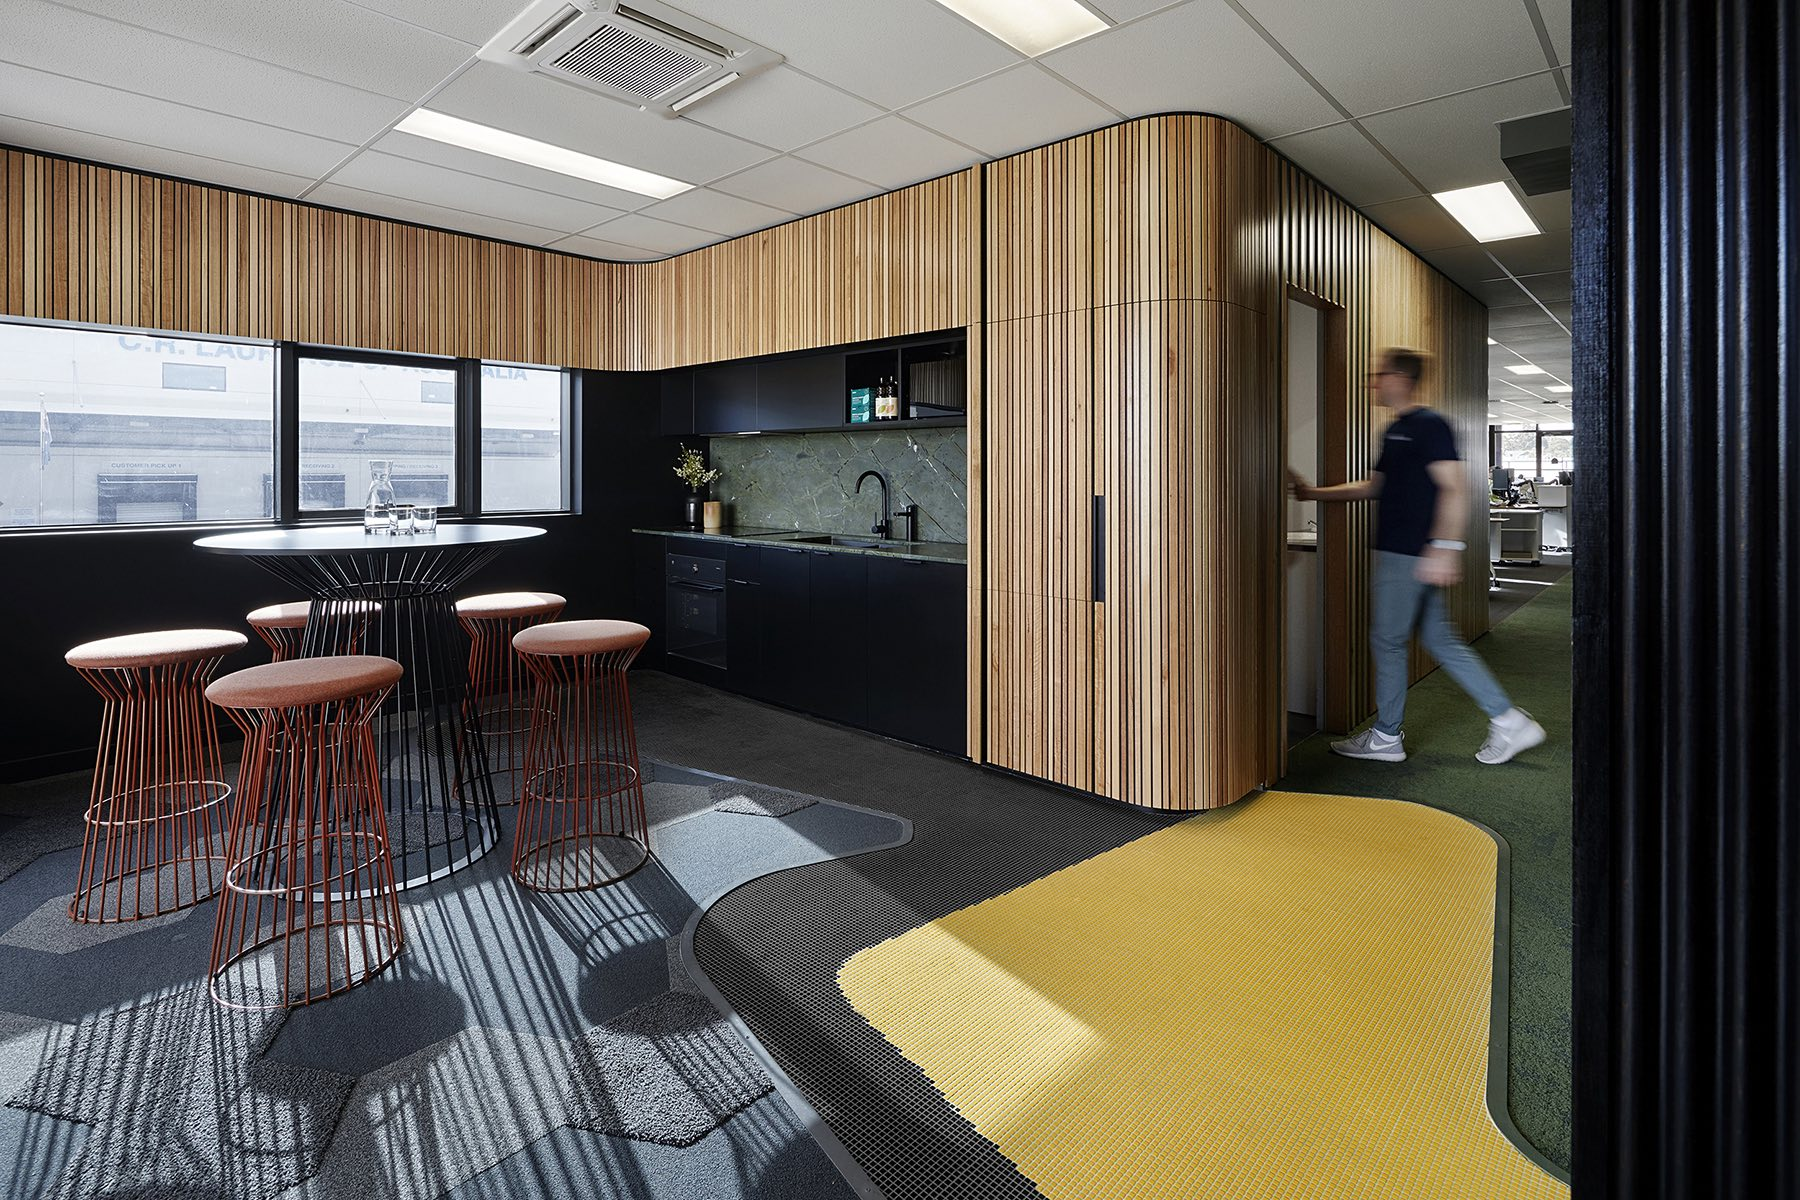 A Look Inside Orchard Manufacturing's New Melbourne Office